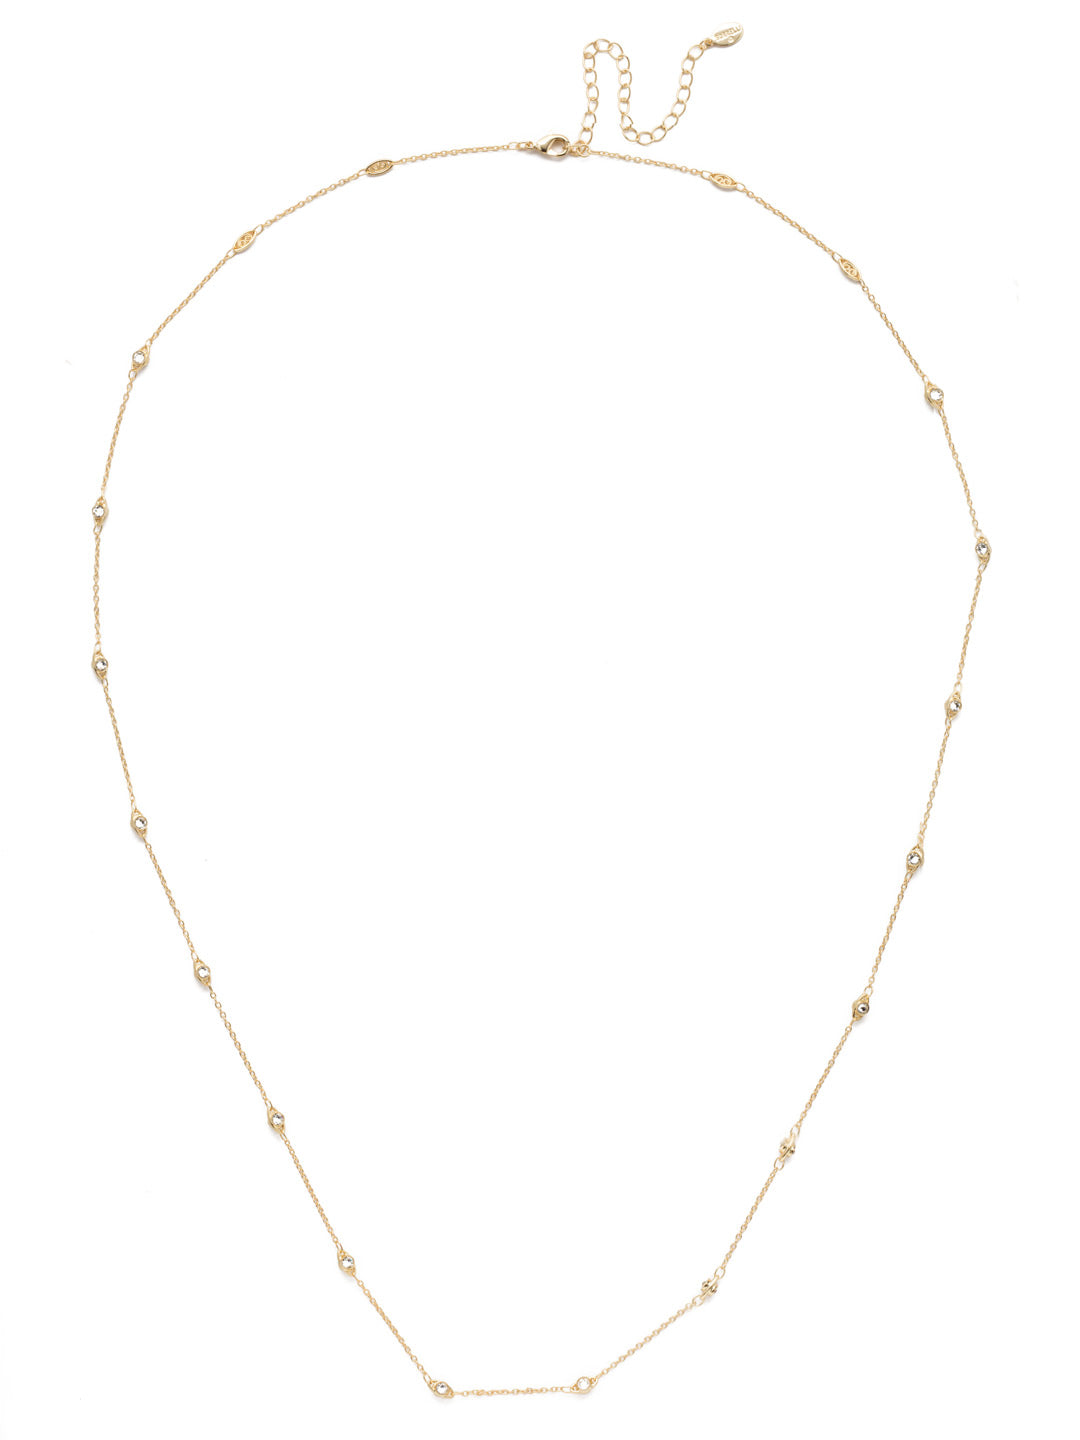 Danica Layered Necklace - 4NEN15BGCRY